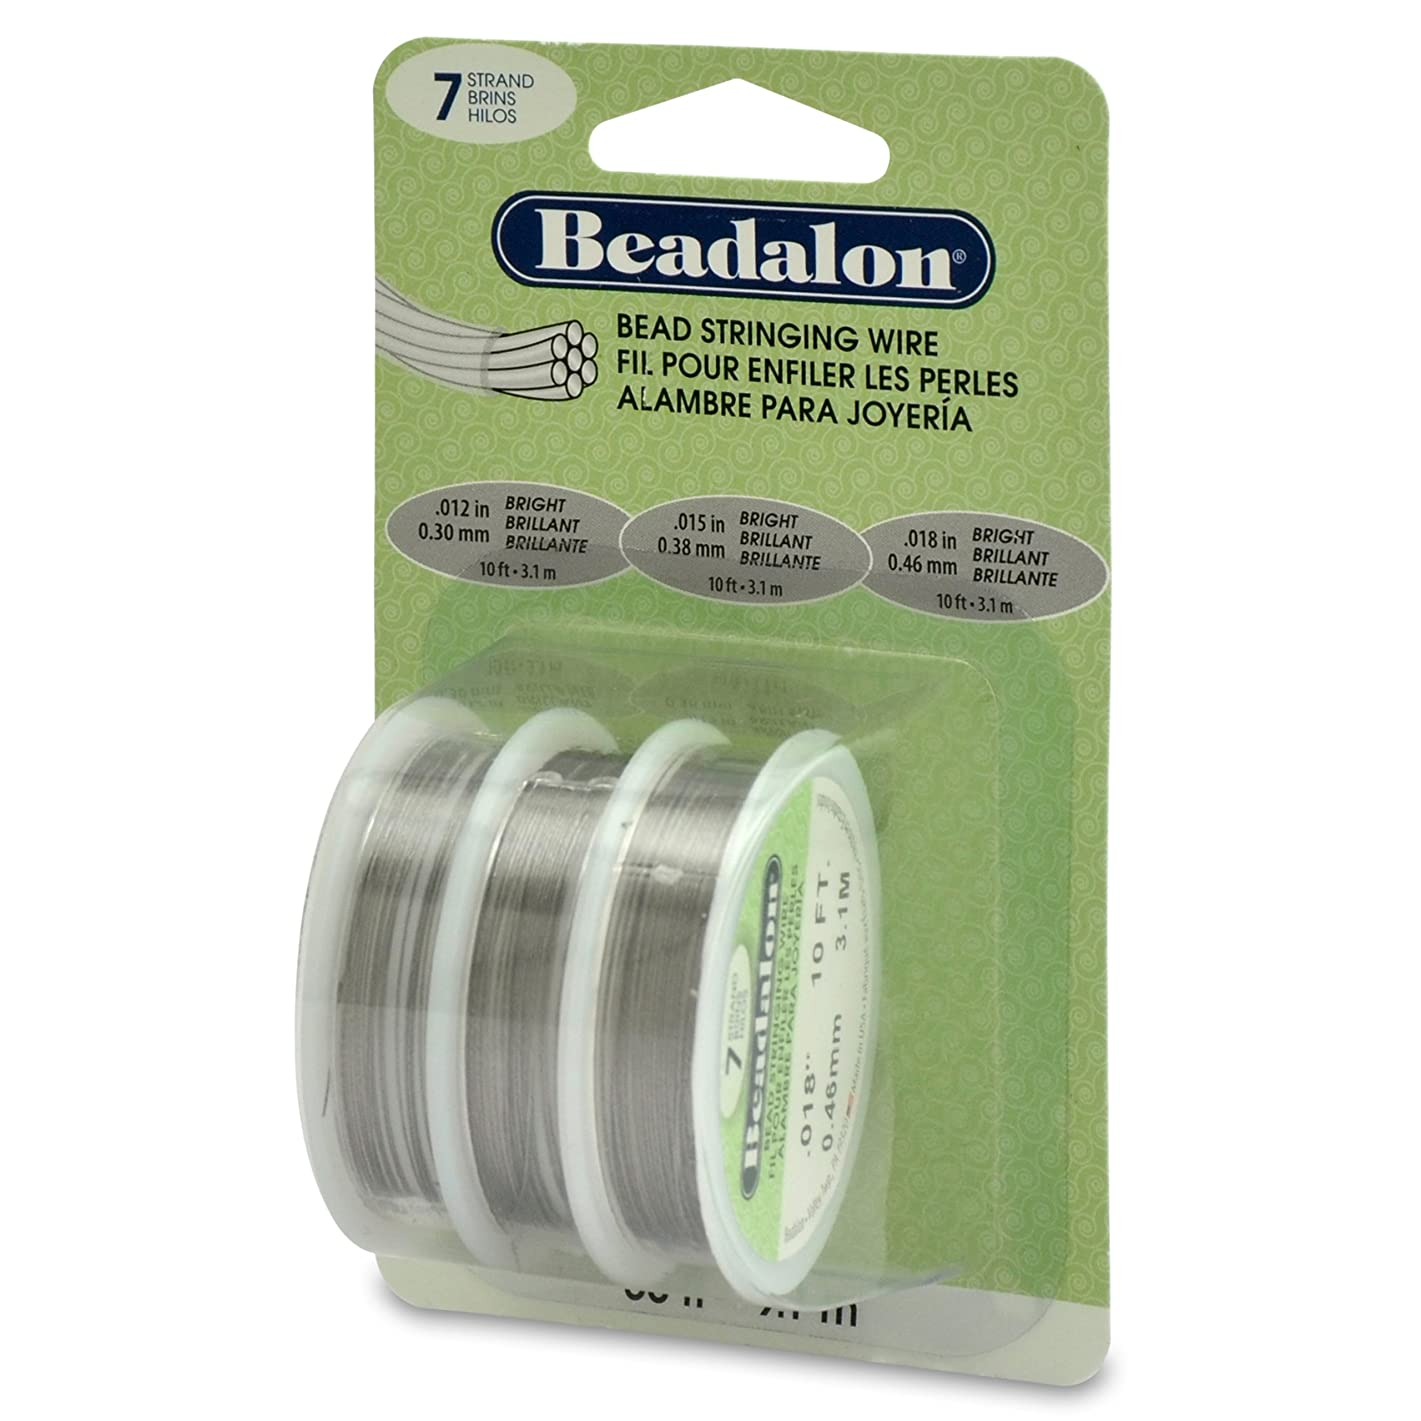 Beadalon 0.012-Inch, 0.015-Inch and 0.018-Inch 7-Strand, Bright, 3-Pack